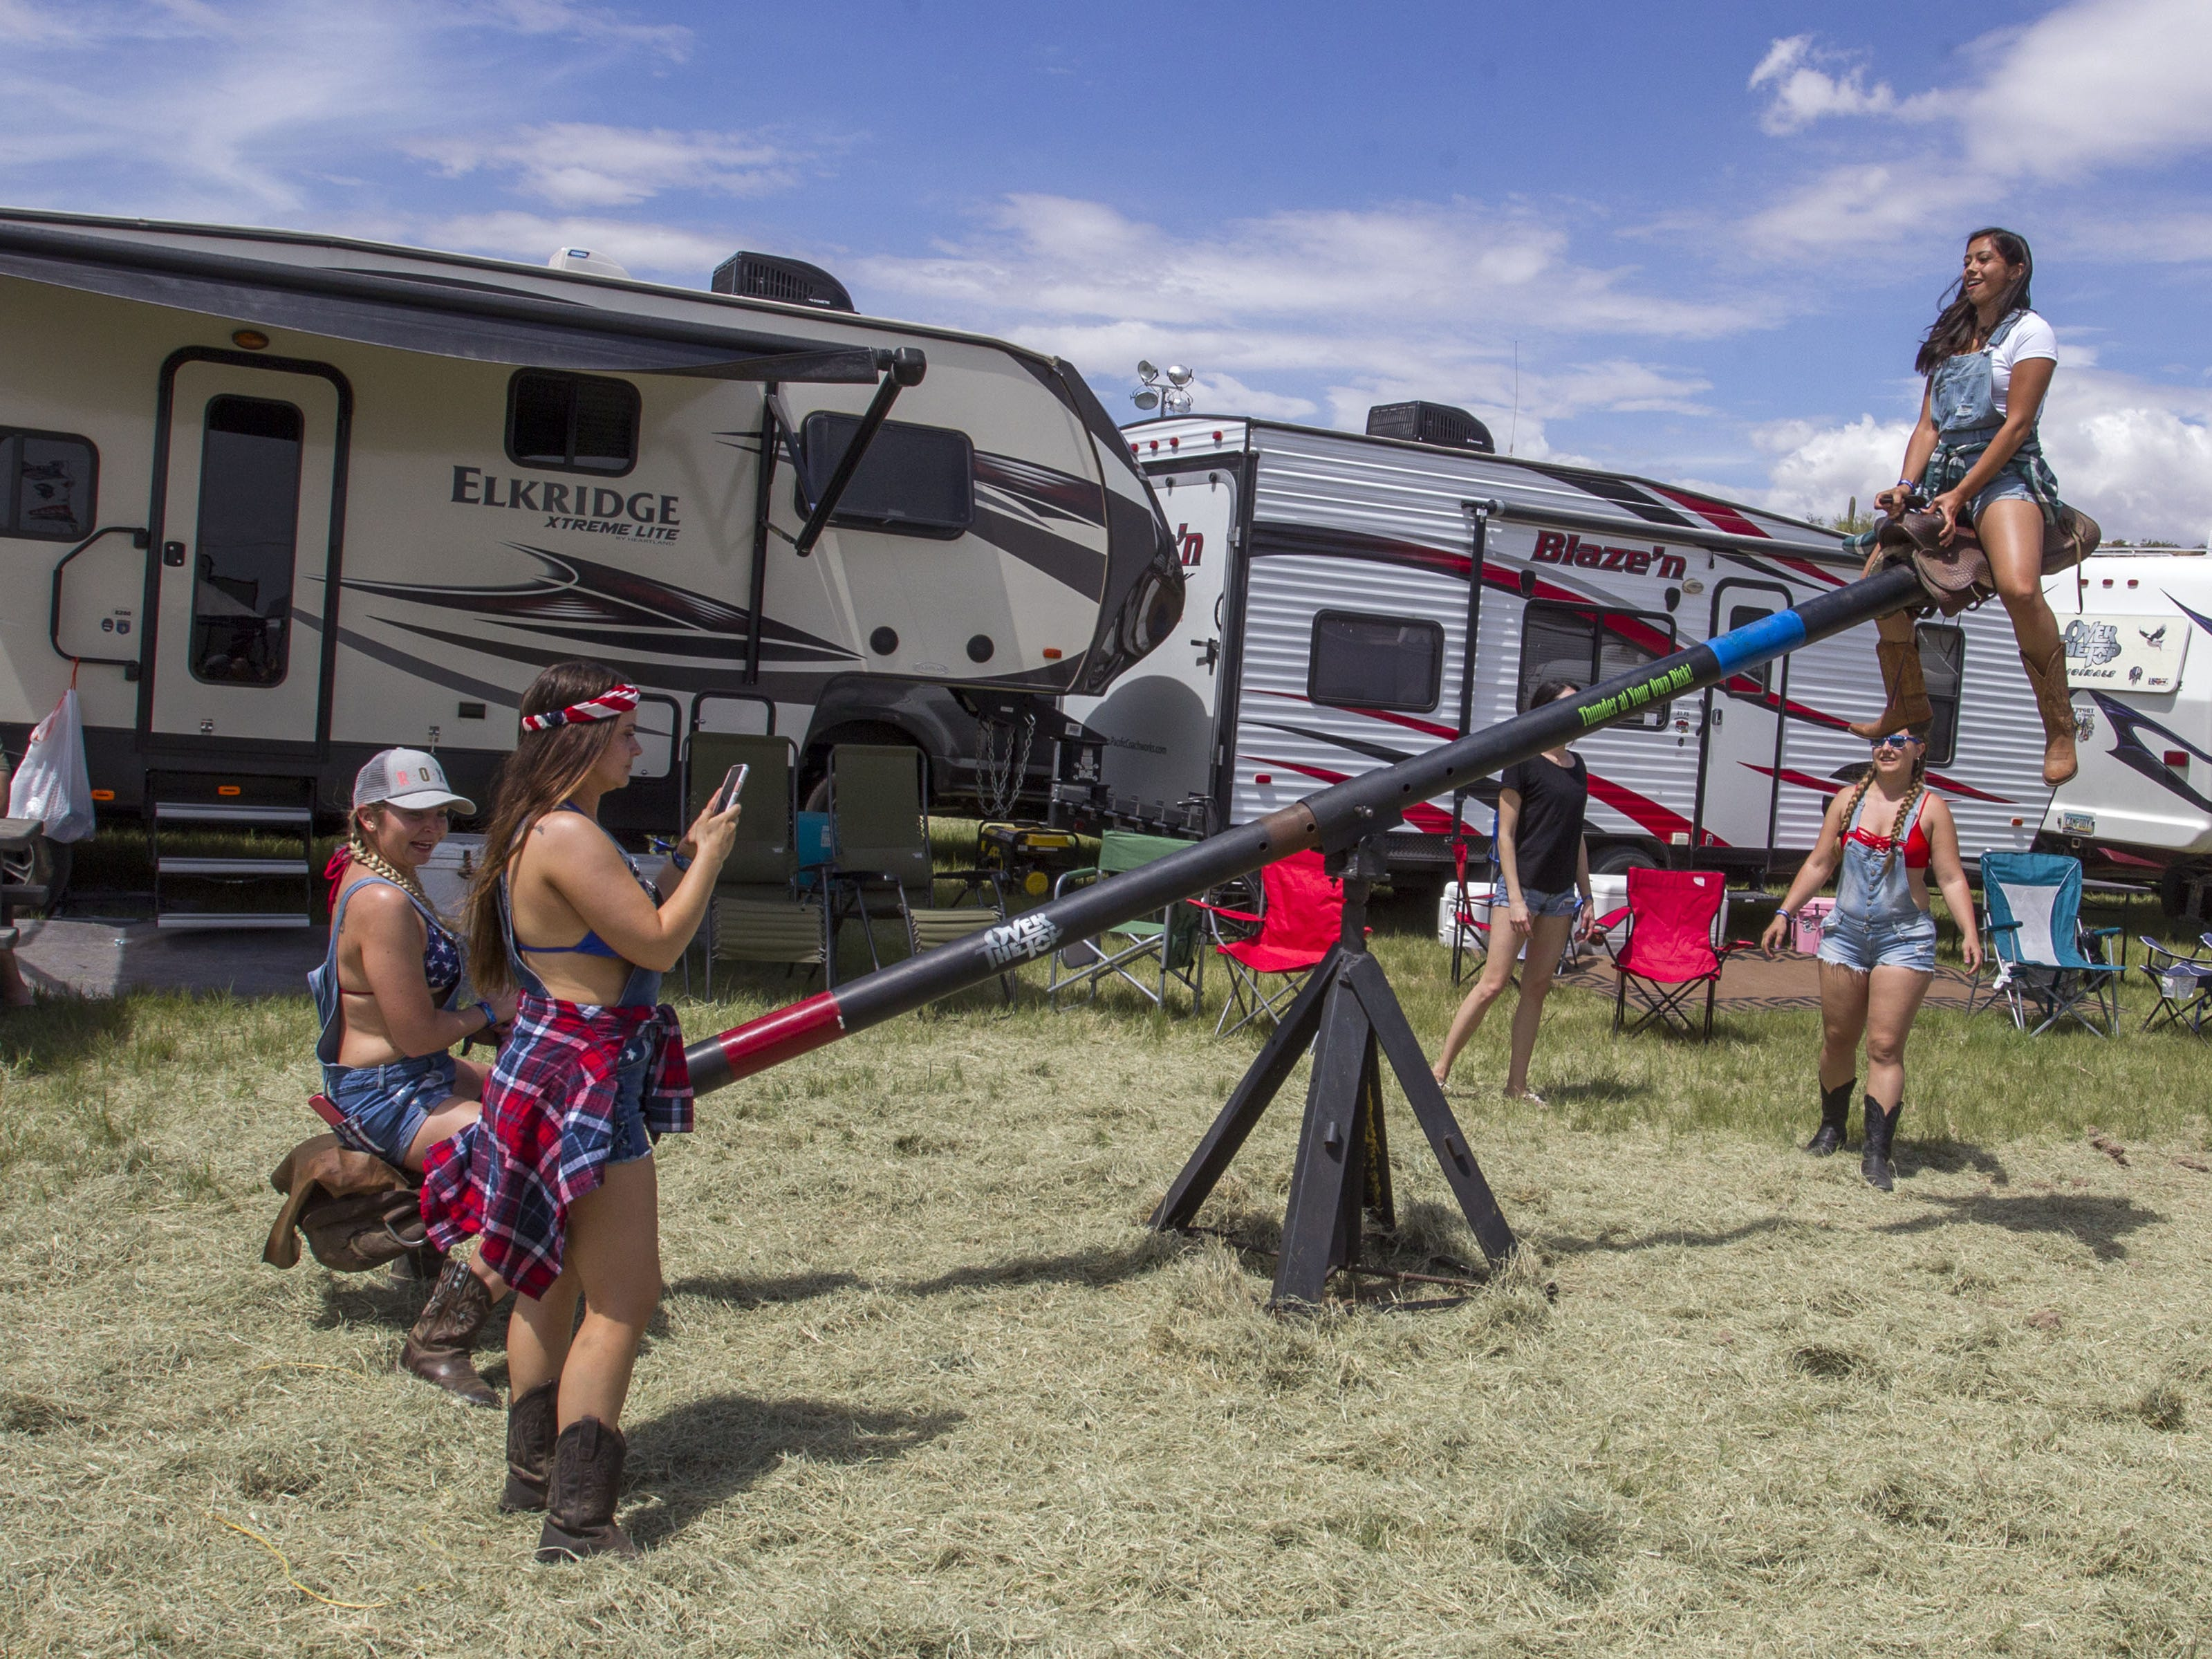 Laura Blackwell (left) and Paulette Mordini teeter totter at I Love This Camp at Country Thunder Arizona Friday, April 12, 2019, in Florence, Ariz.